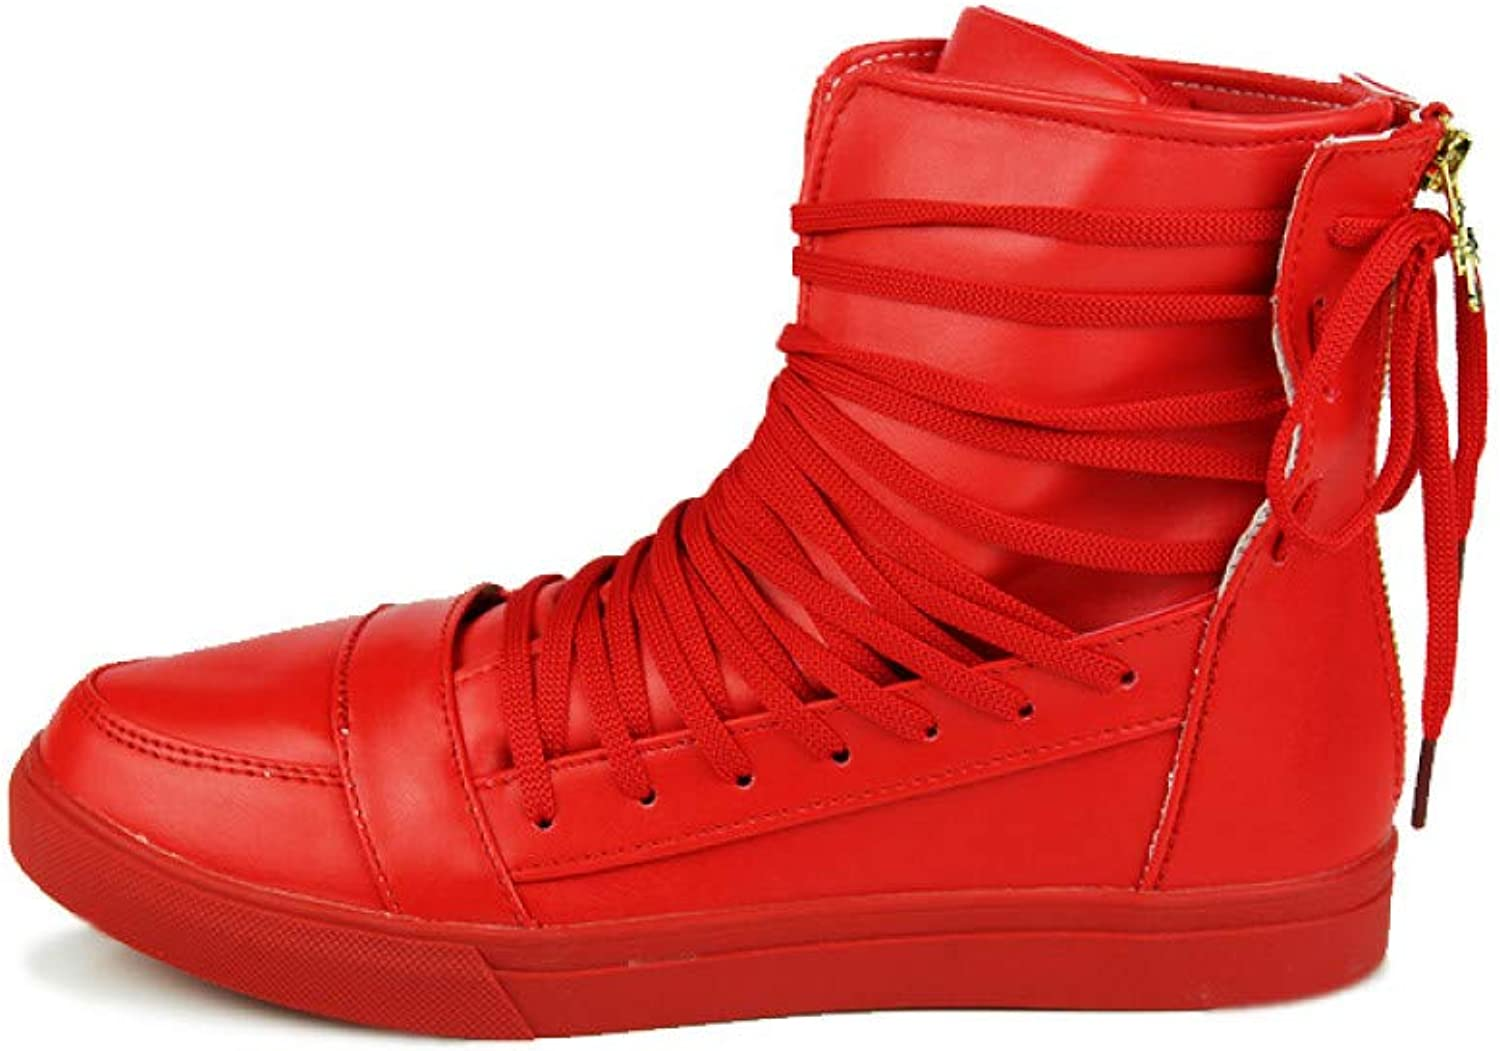 FHCGMX PU Leather Fashion Boots Male For Men shoes Adult Winter Warm Sneakers Quality Footwear